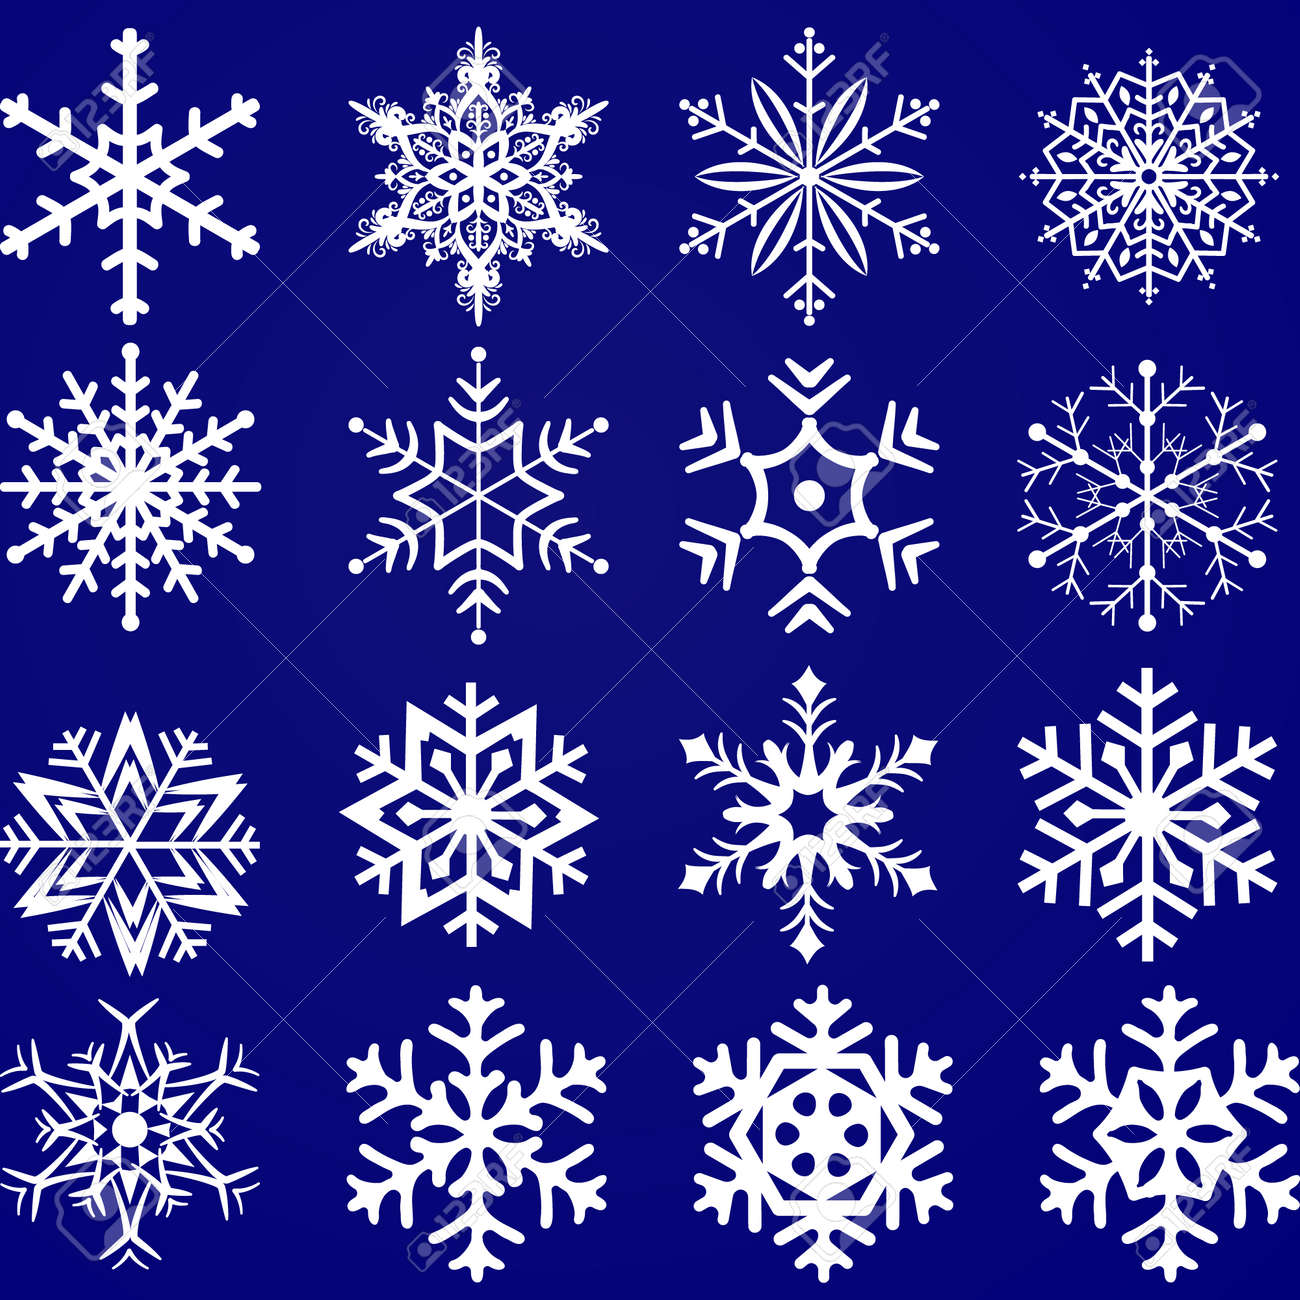 Set of vector snowflakes on a blue background - 122835194